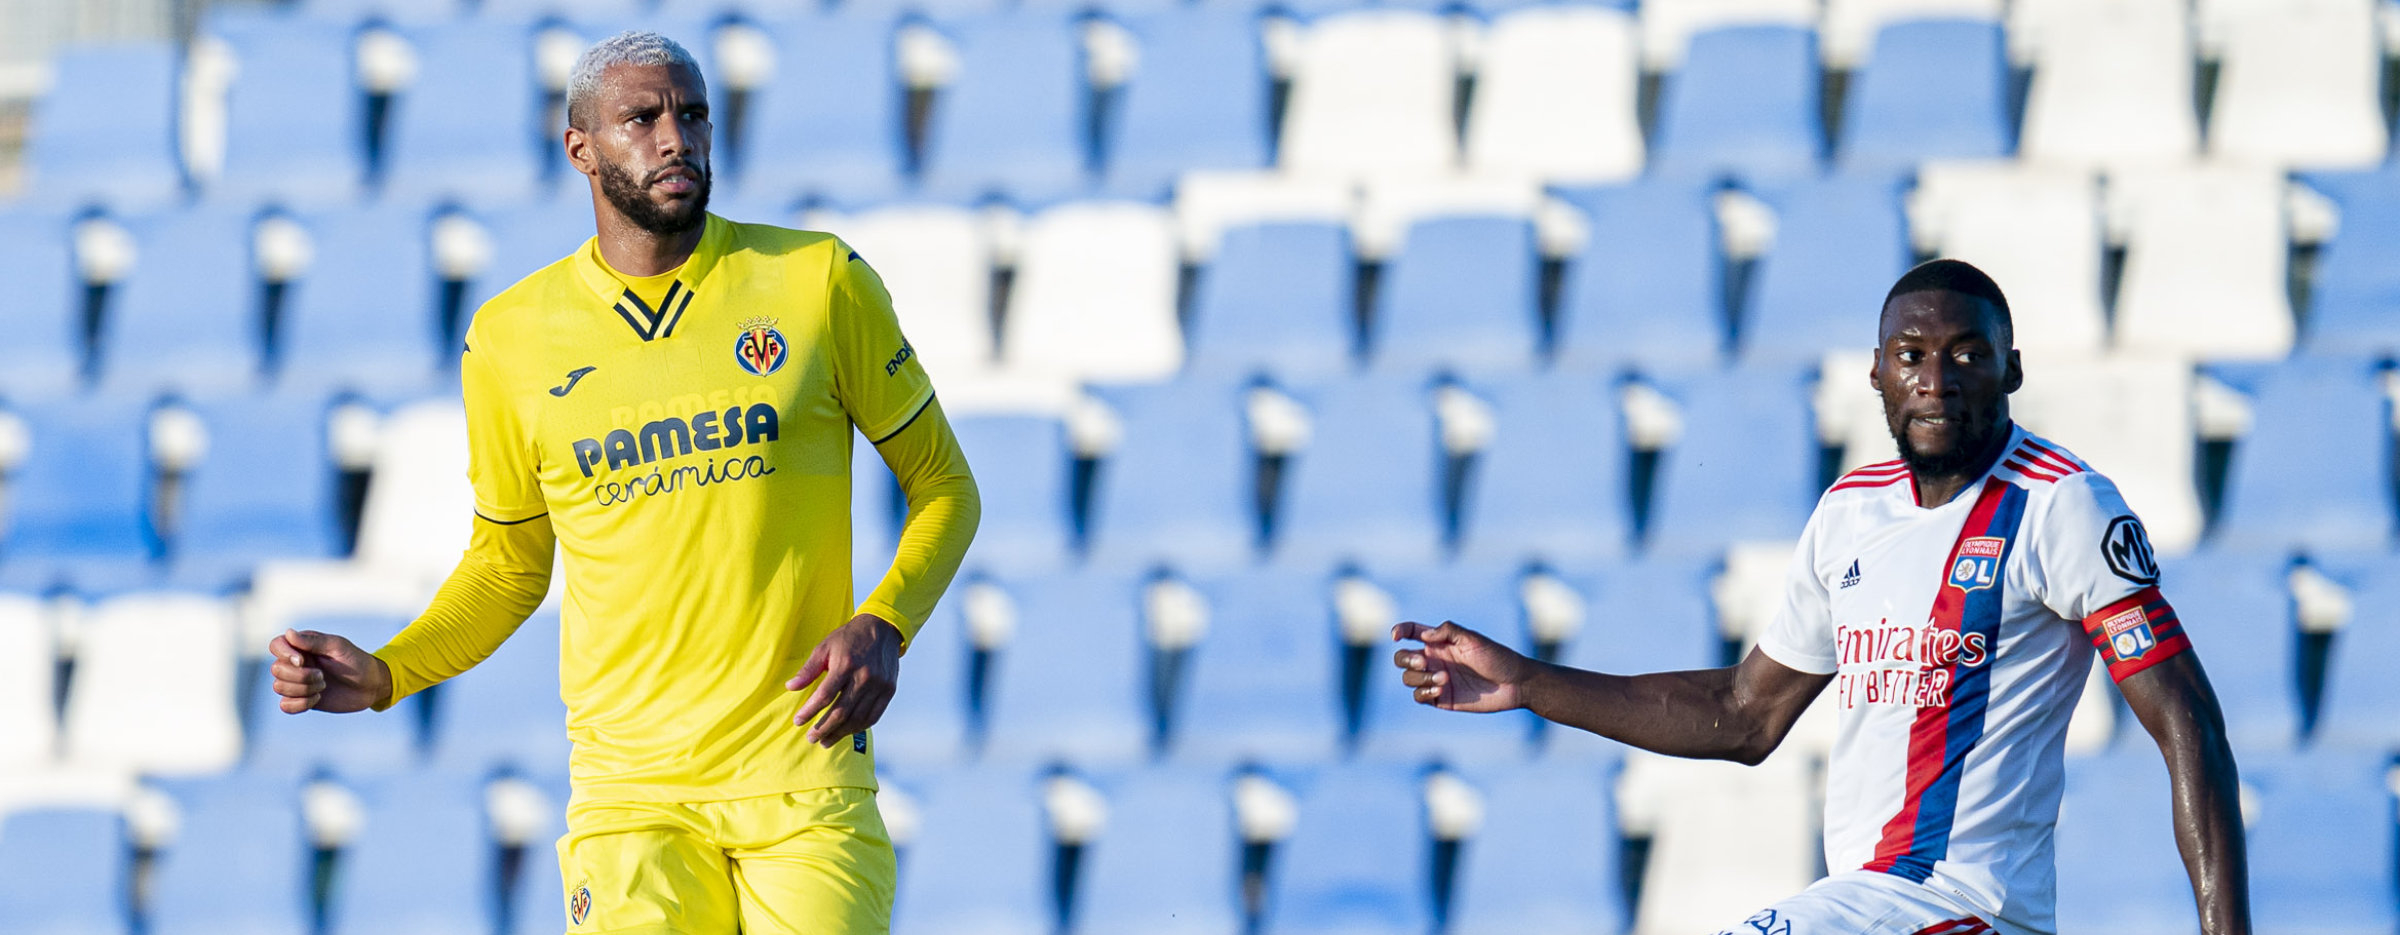 Villarreal will play a friendly against Levante UD